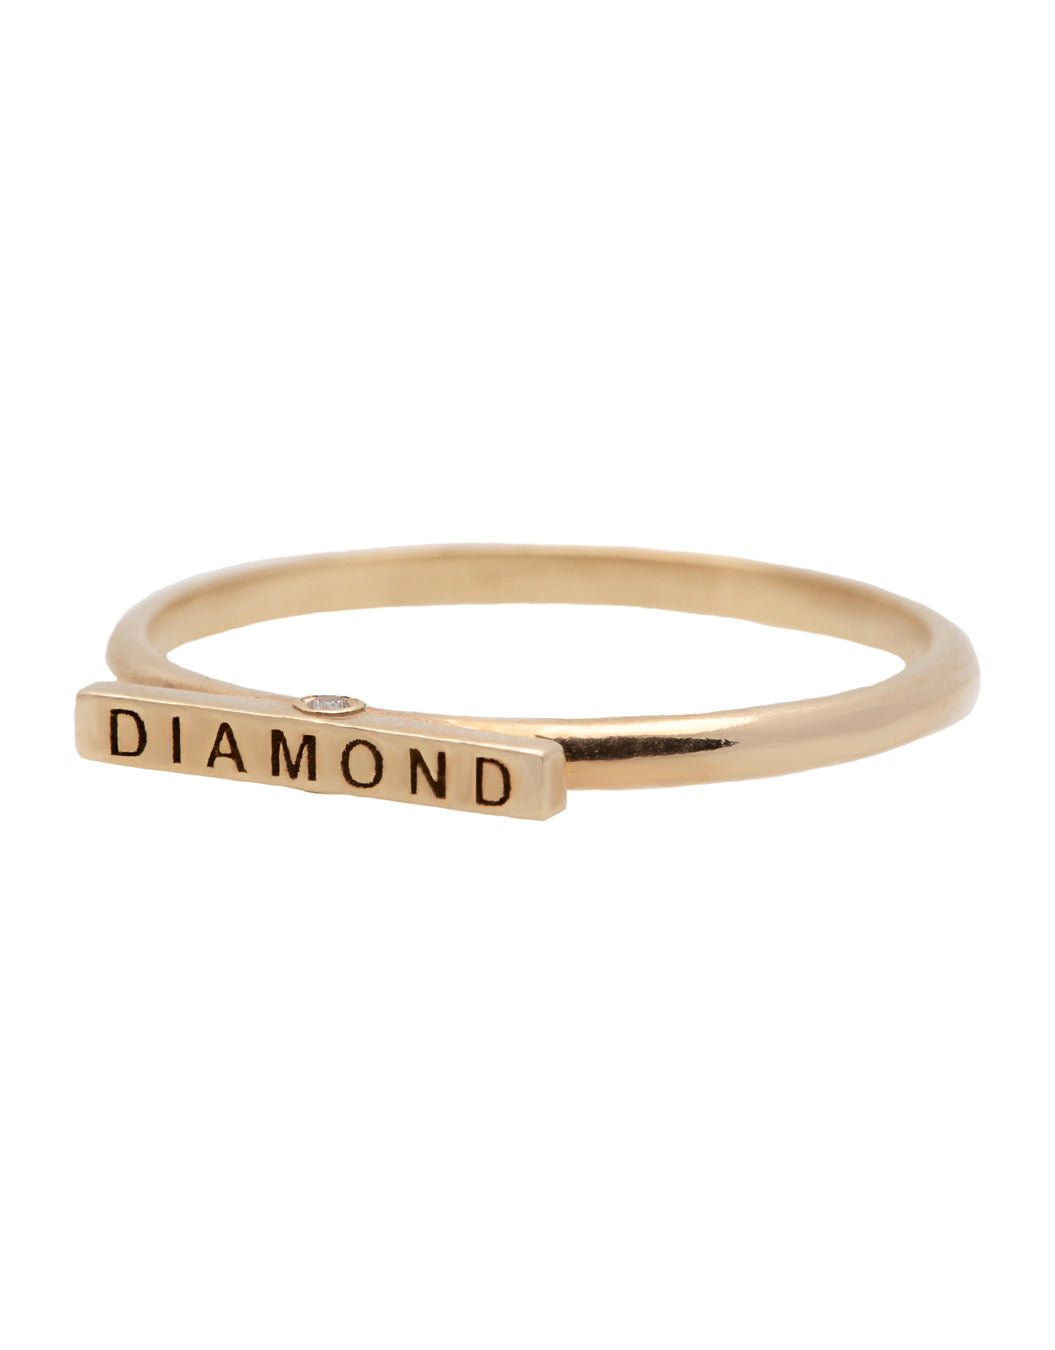 No Diamond Diamond Ring